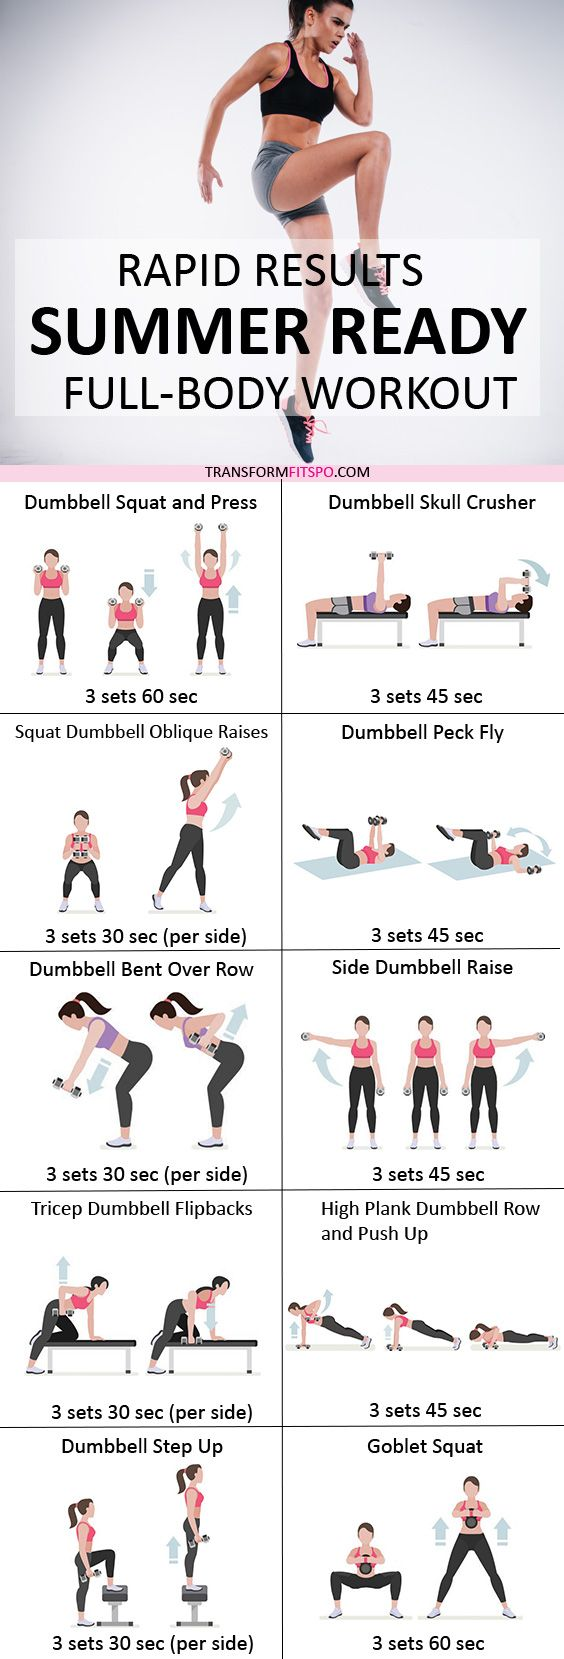 #womensworkout #workout #femalefitness Share and repin if this workout helped you get a summer body.   Click the pin for the full workout.